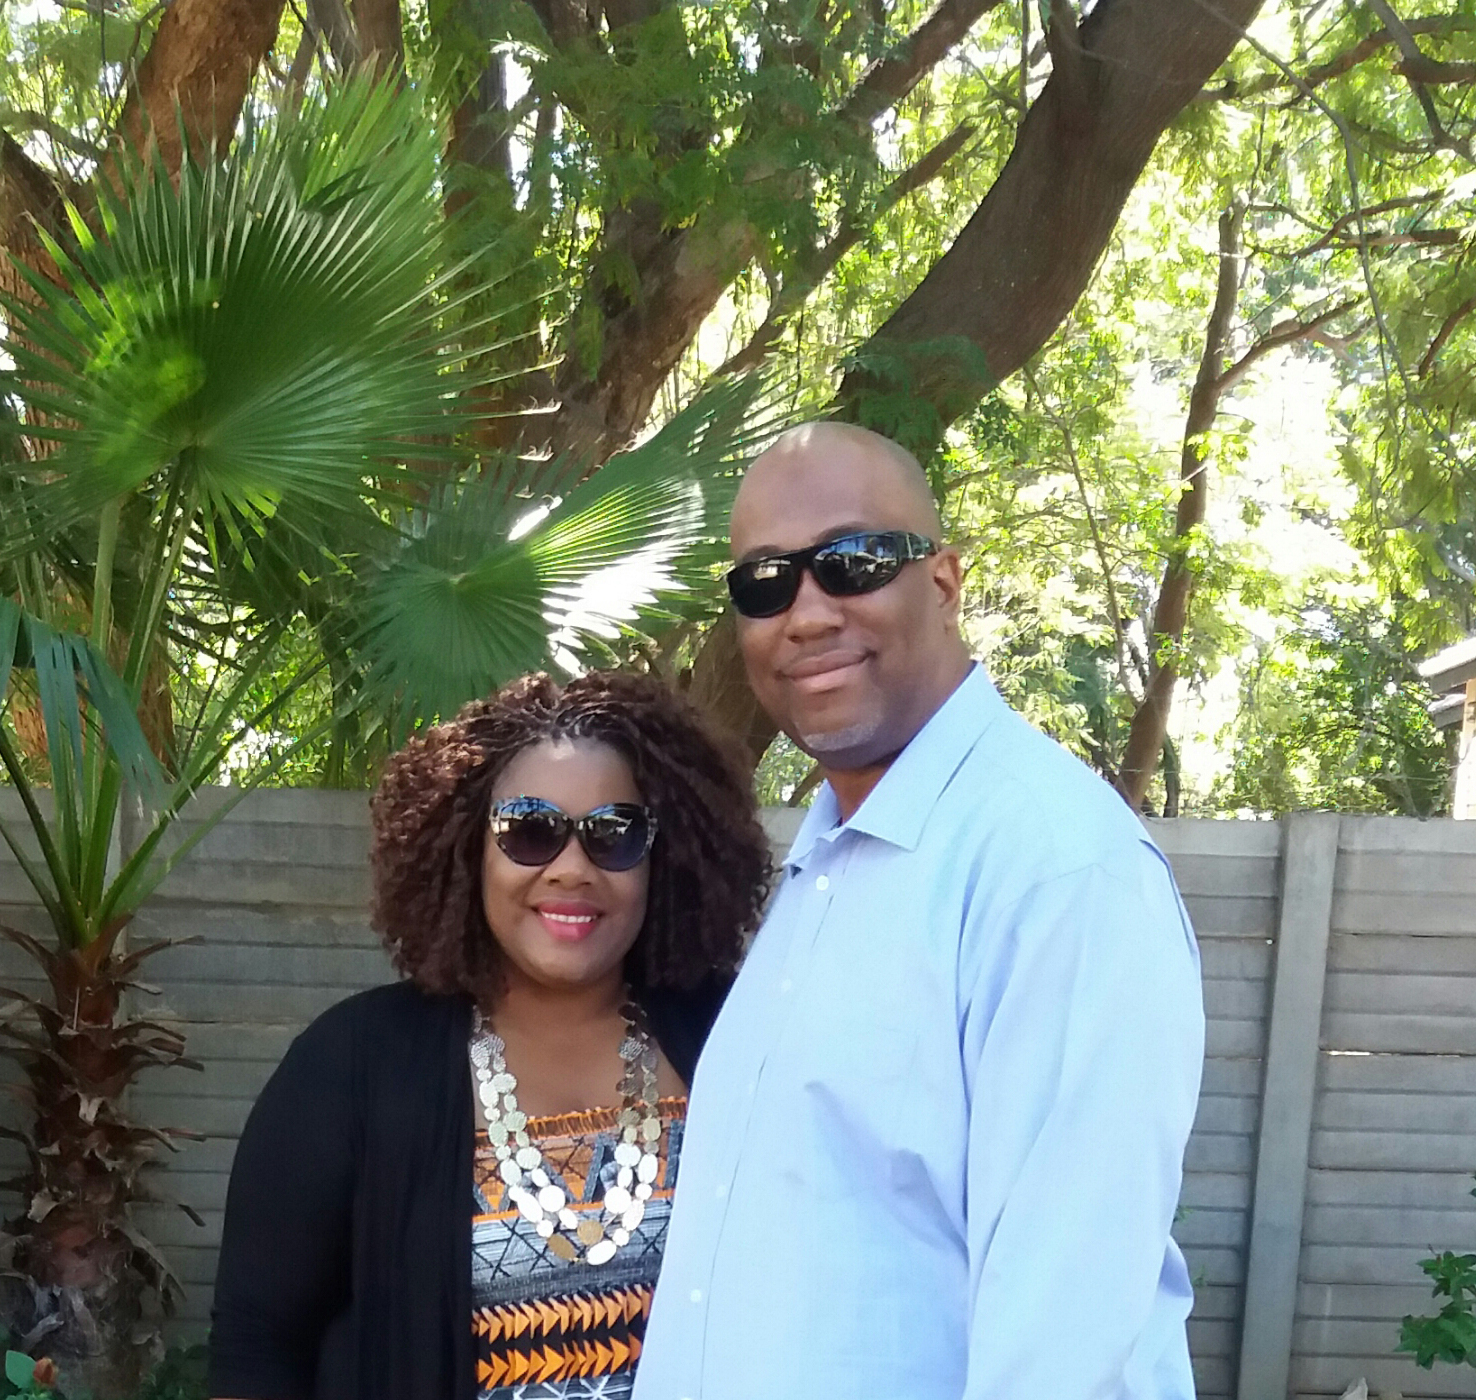 Paula Brown and her husband pictured above chose to relocate to Francistown, Botswana after a visit to the capital city.